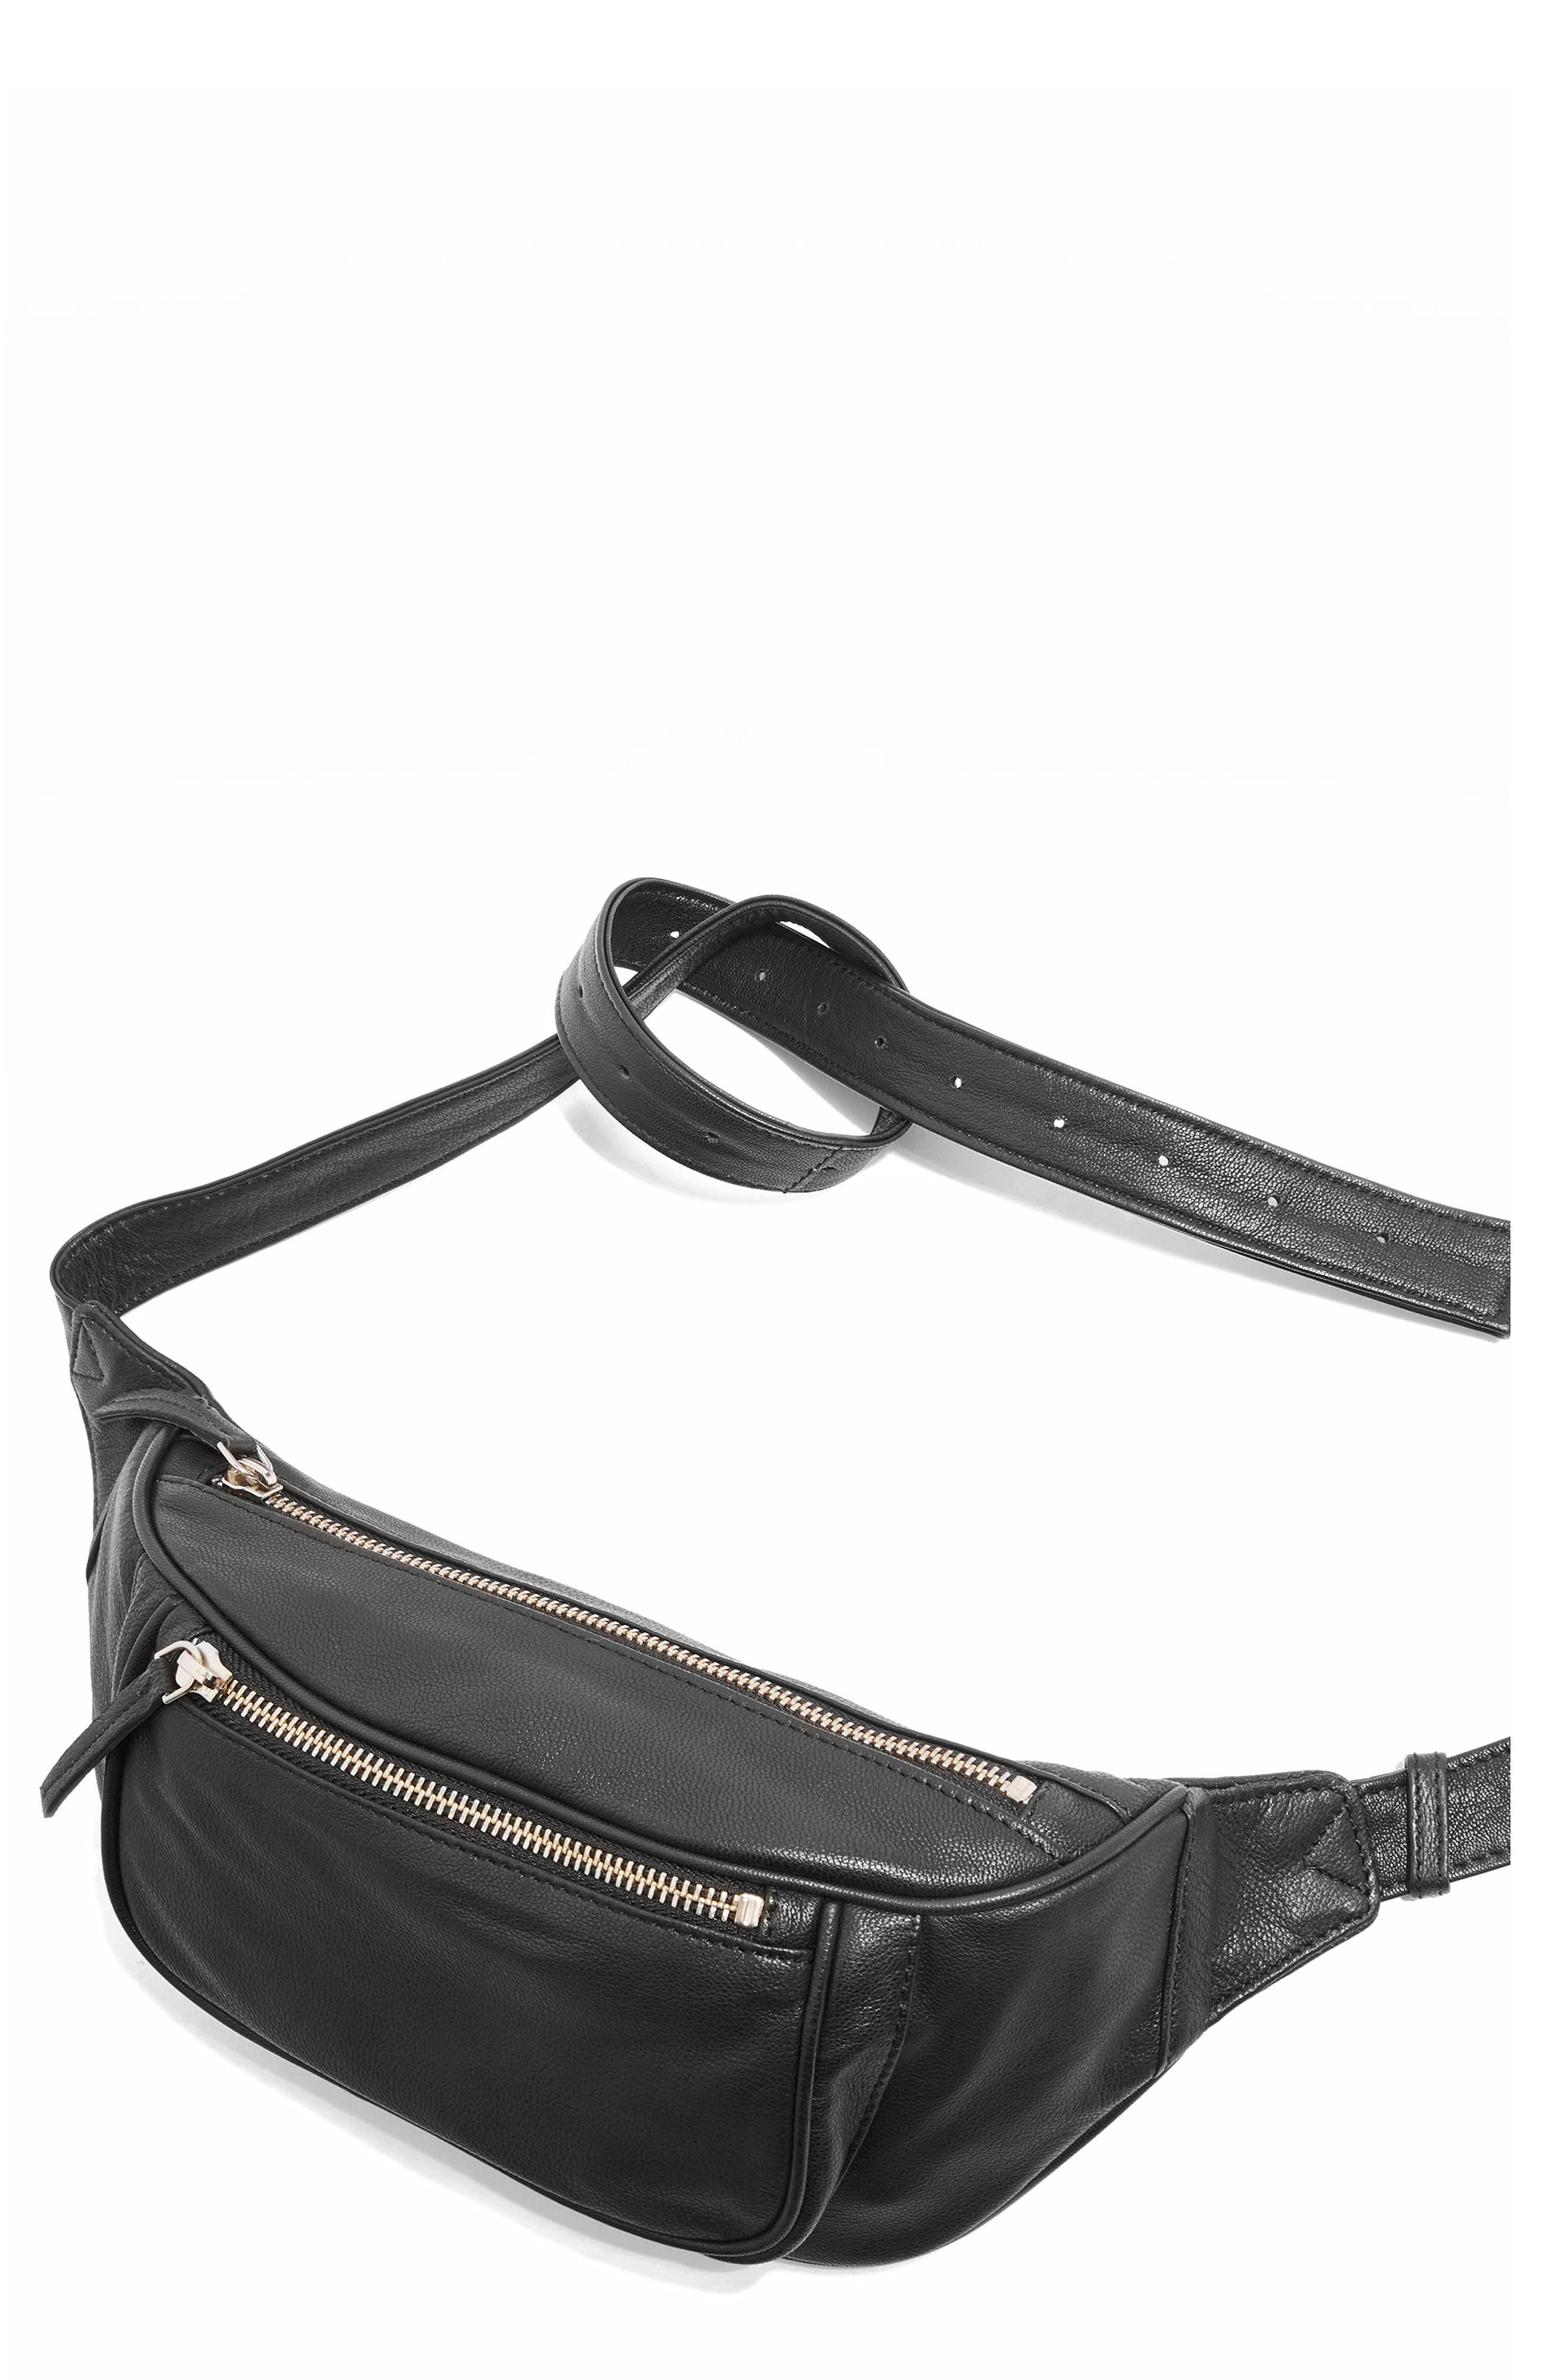 Alternate Image 1 Selected - Topshop Leather Bumbag